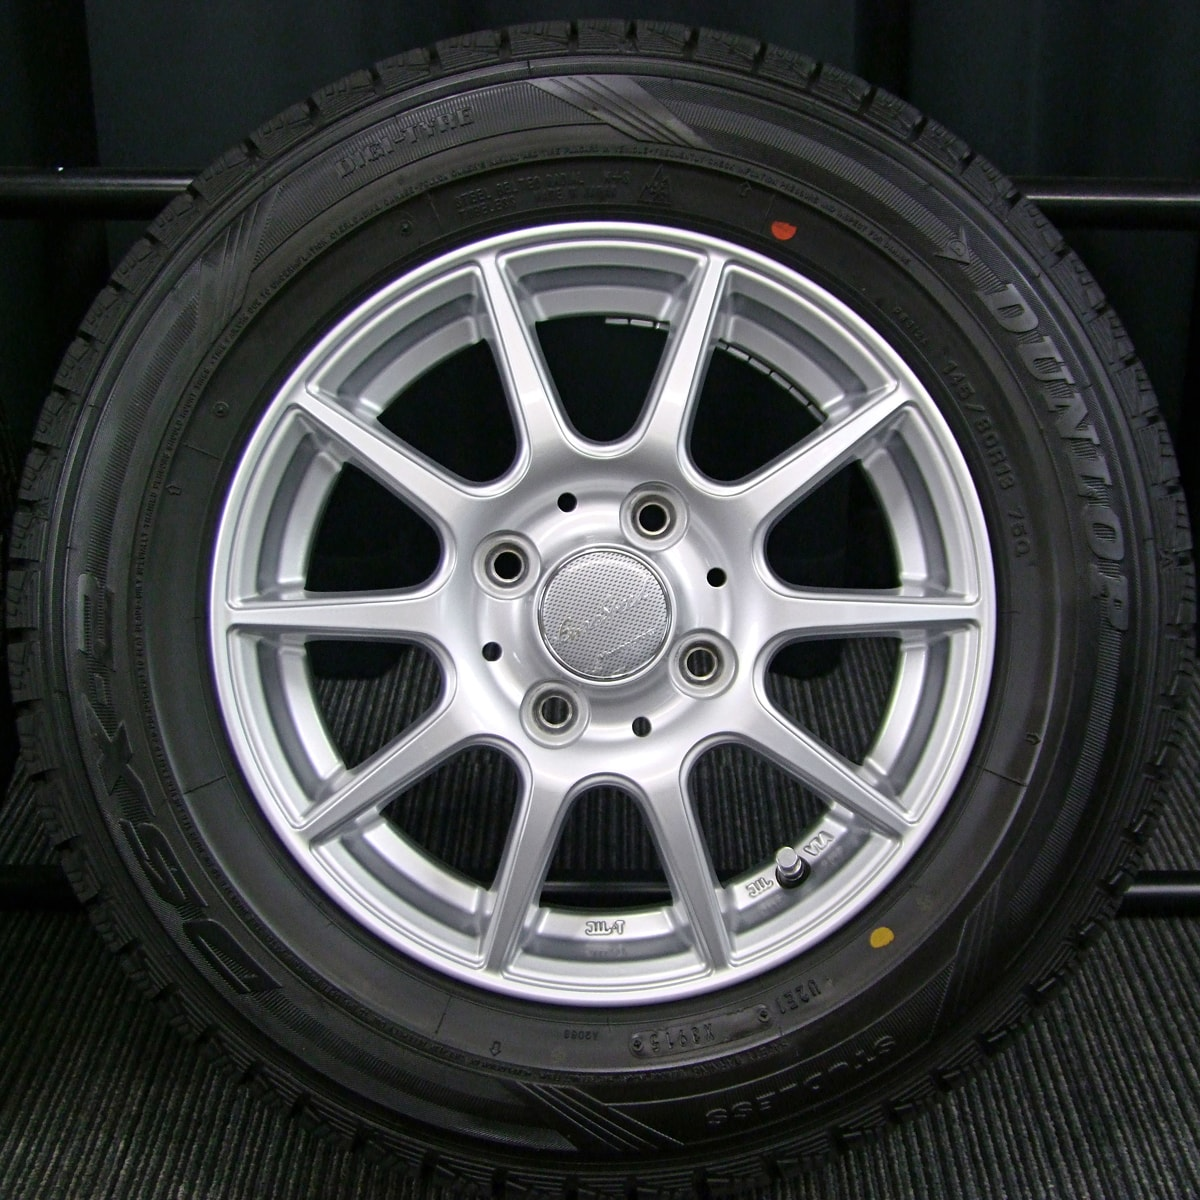 MANARAY SPORT EuroSpeed smart シルバー DUNLOP DSX-2 145/80R13 4本SET